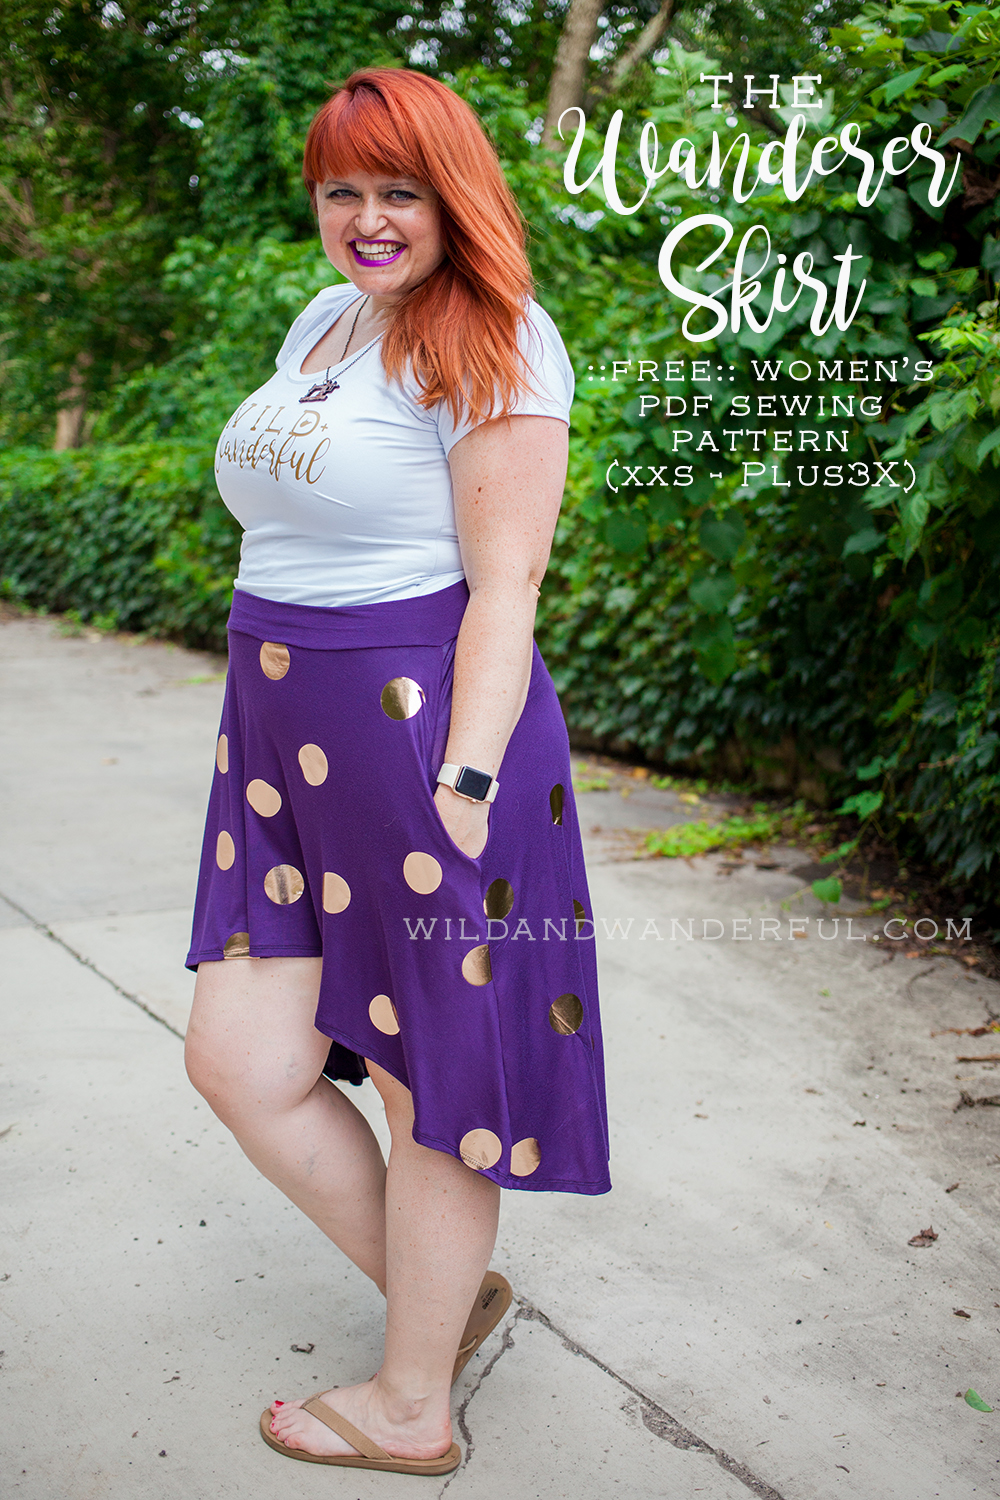 The Wanderer Skirt  :: FREE Women's High-Low Skirt Pattern